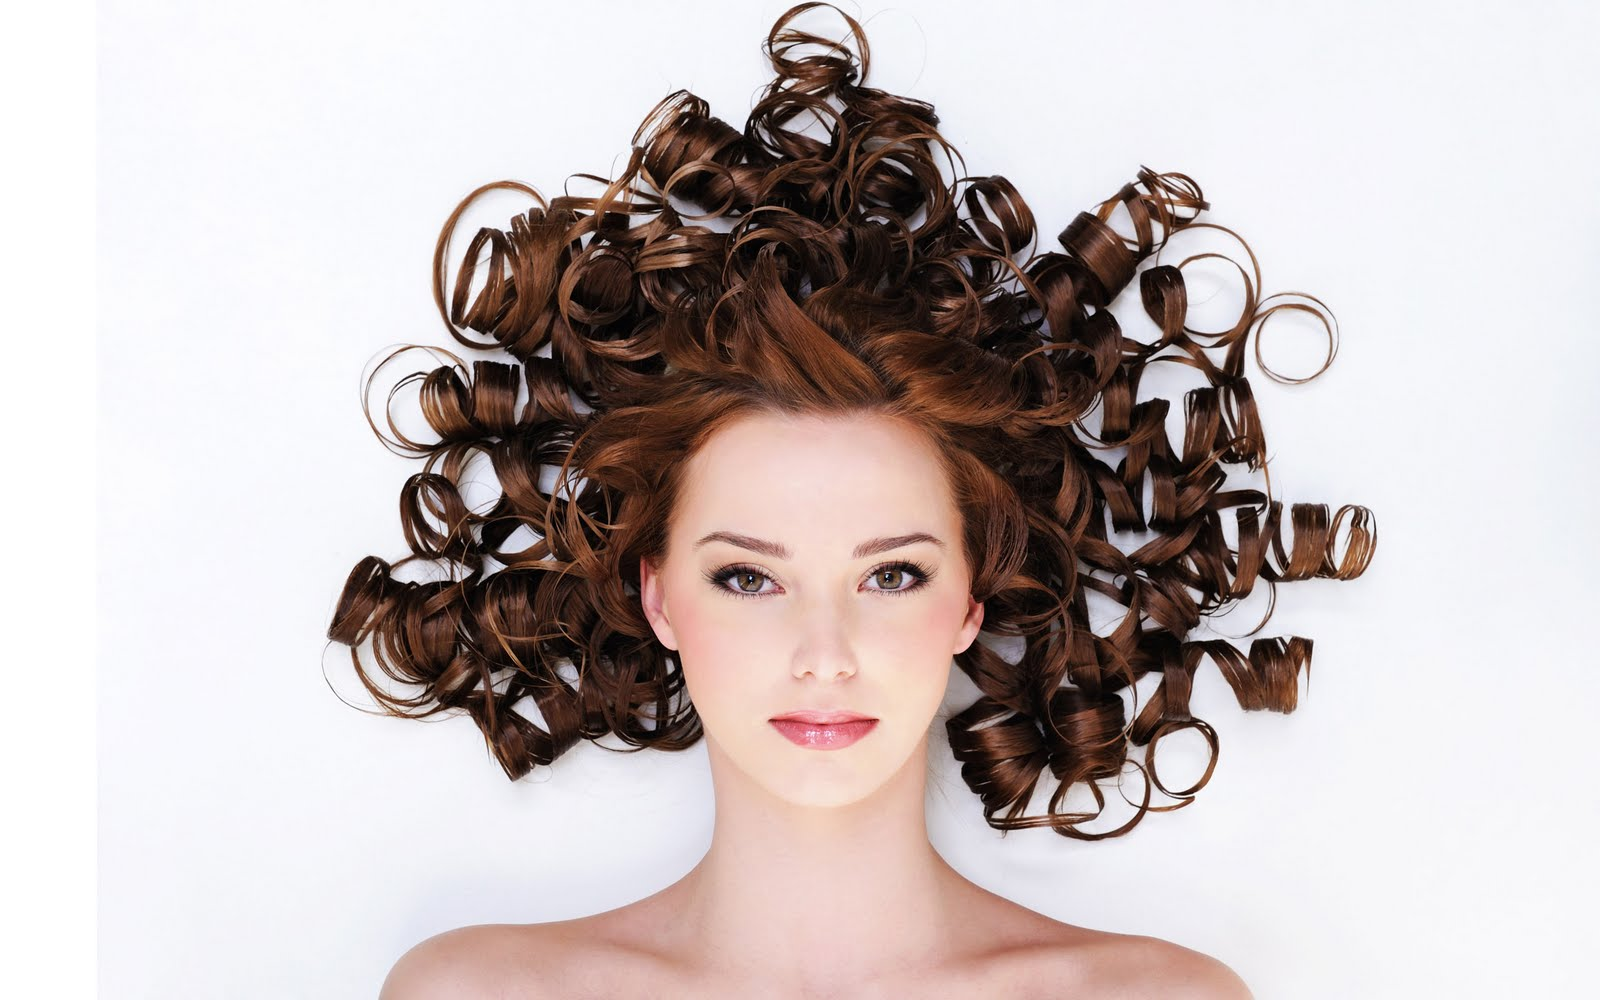 Hair Style WallpaperWallpaper Stylehollywood